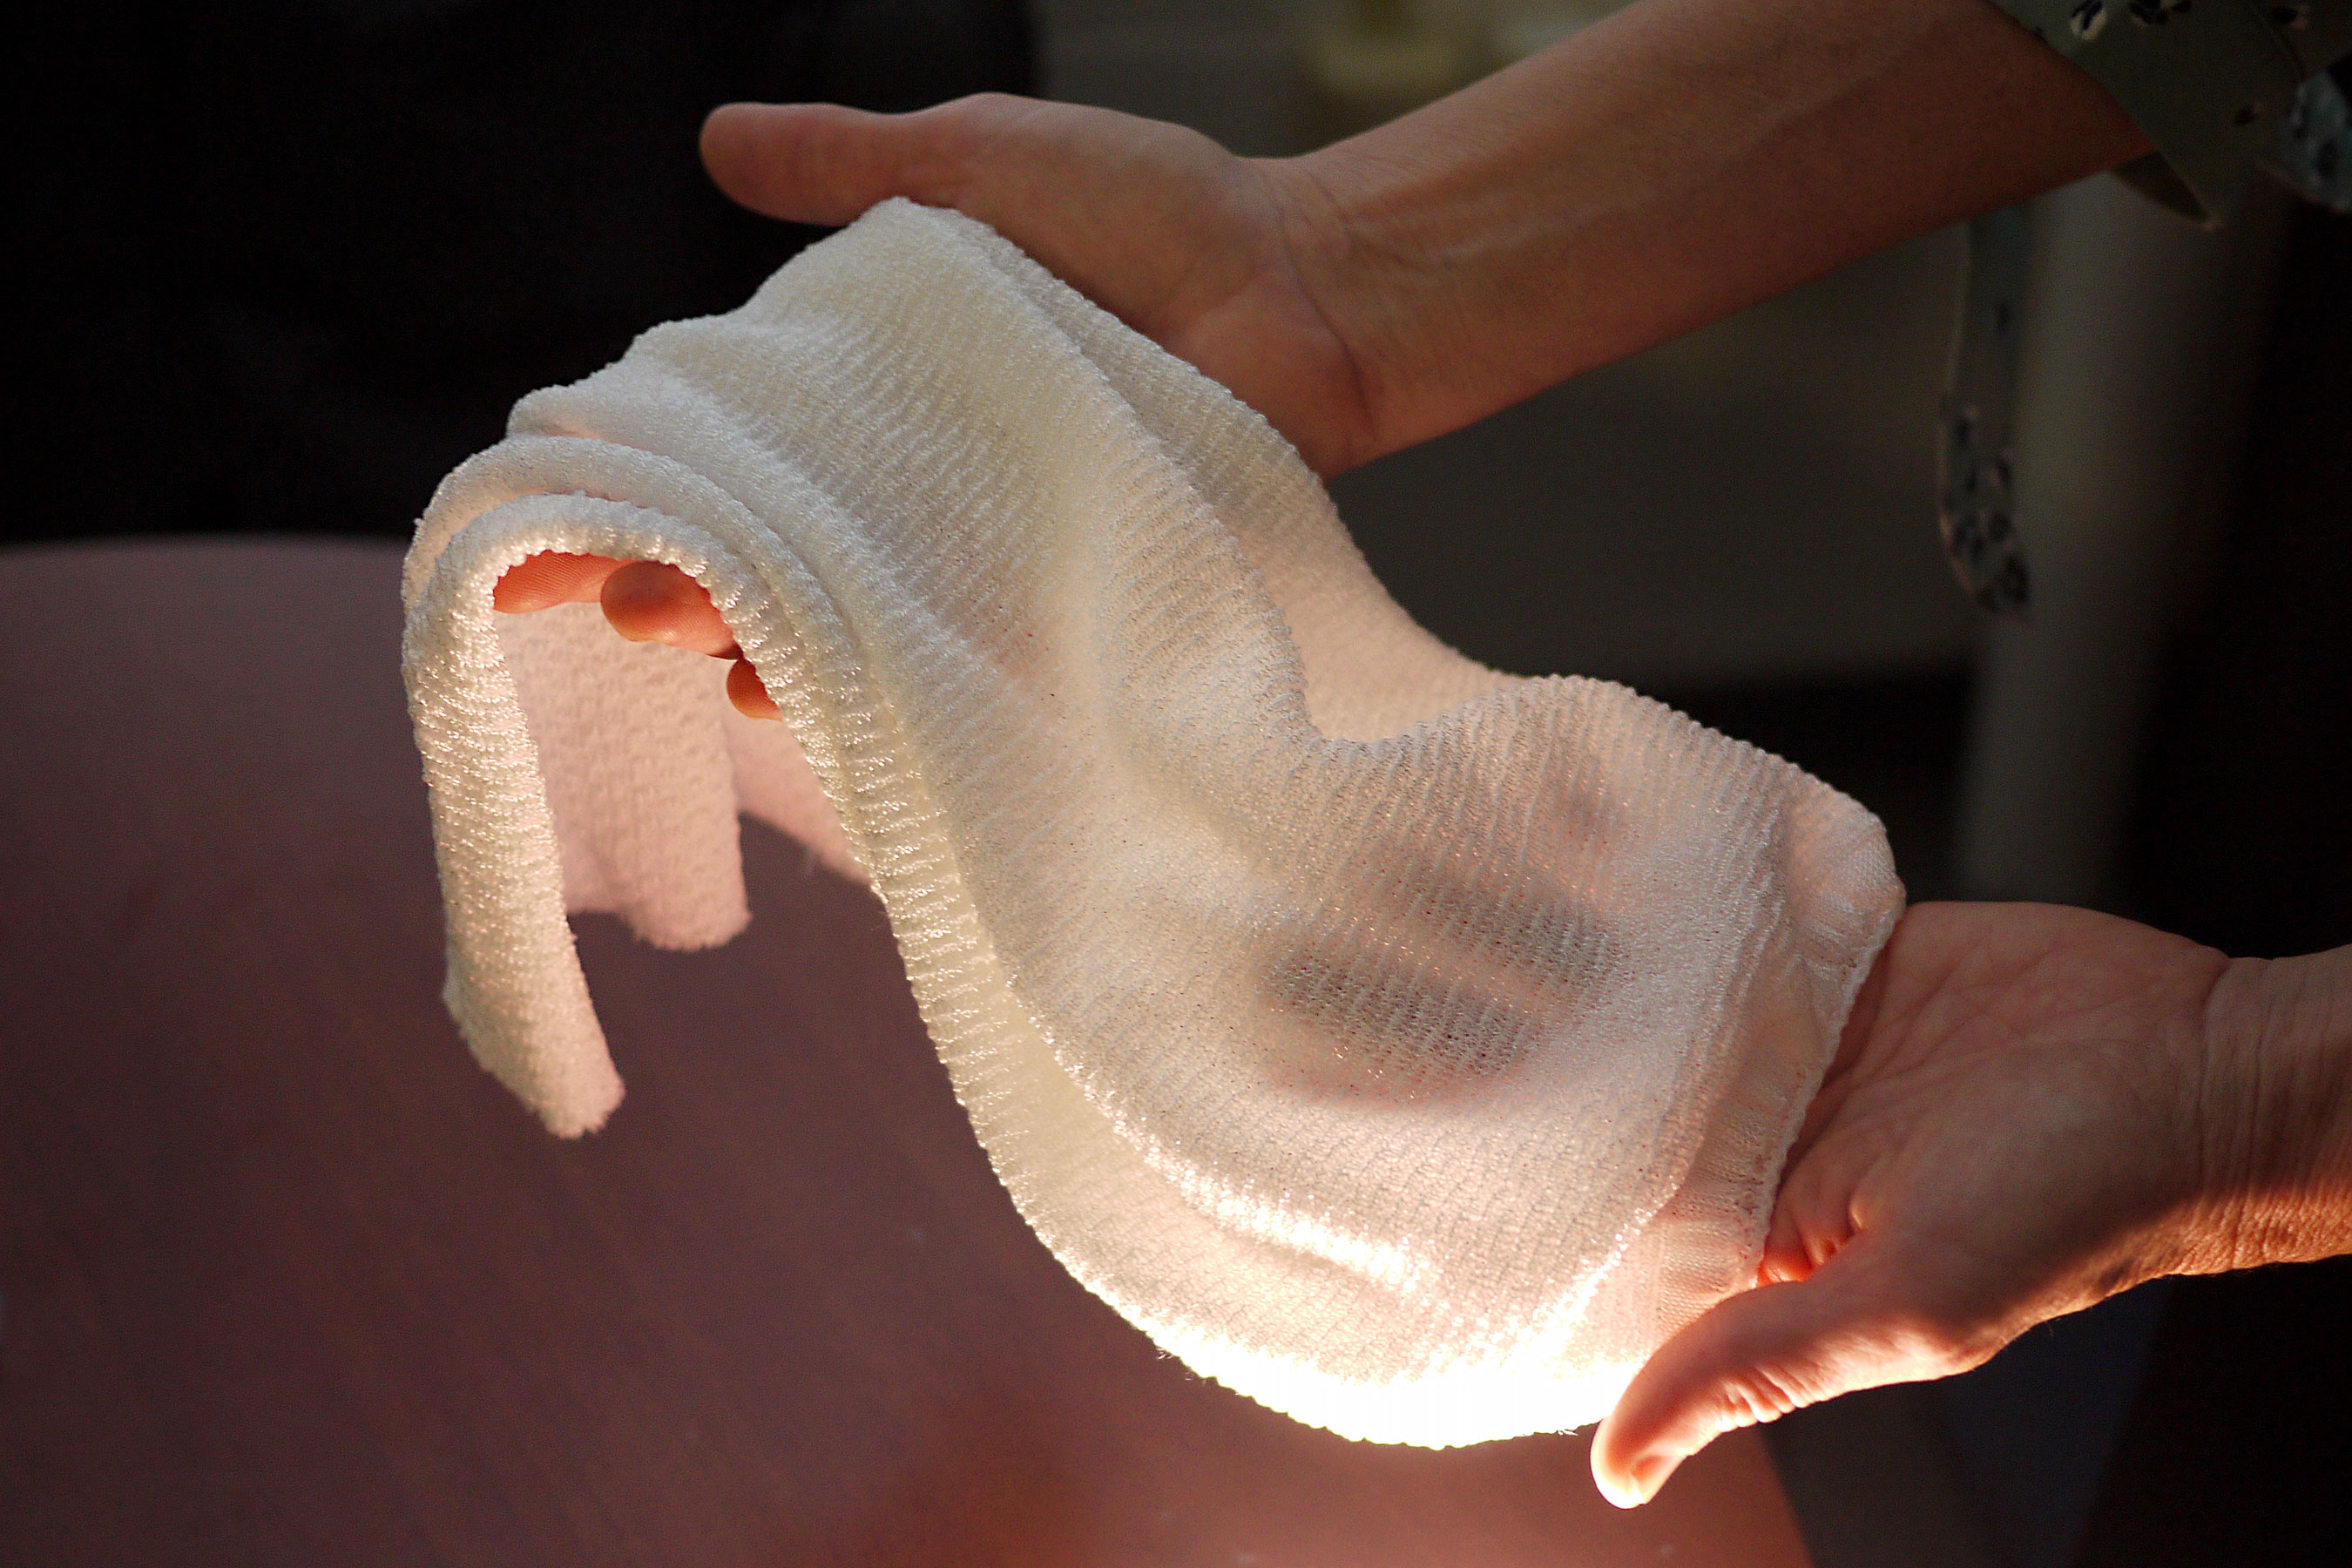 This new fabric will automatically cool you down when you get hot and sweaty